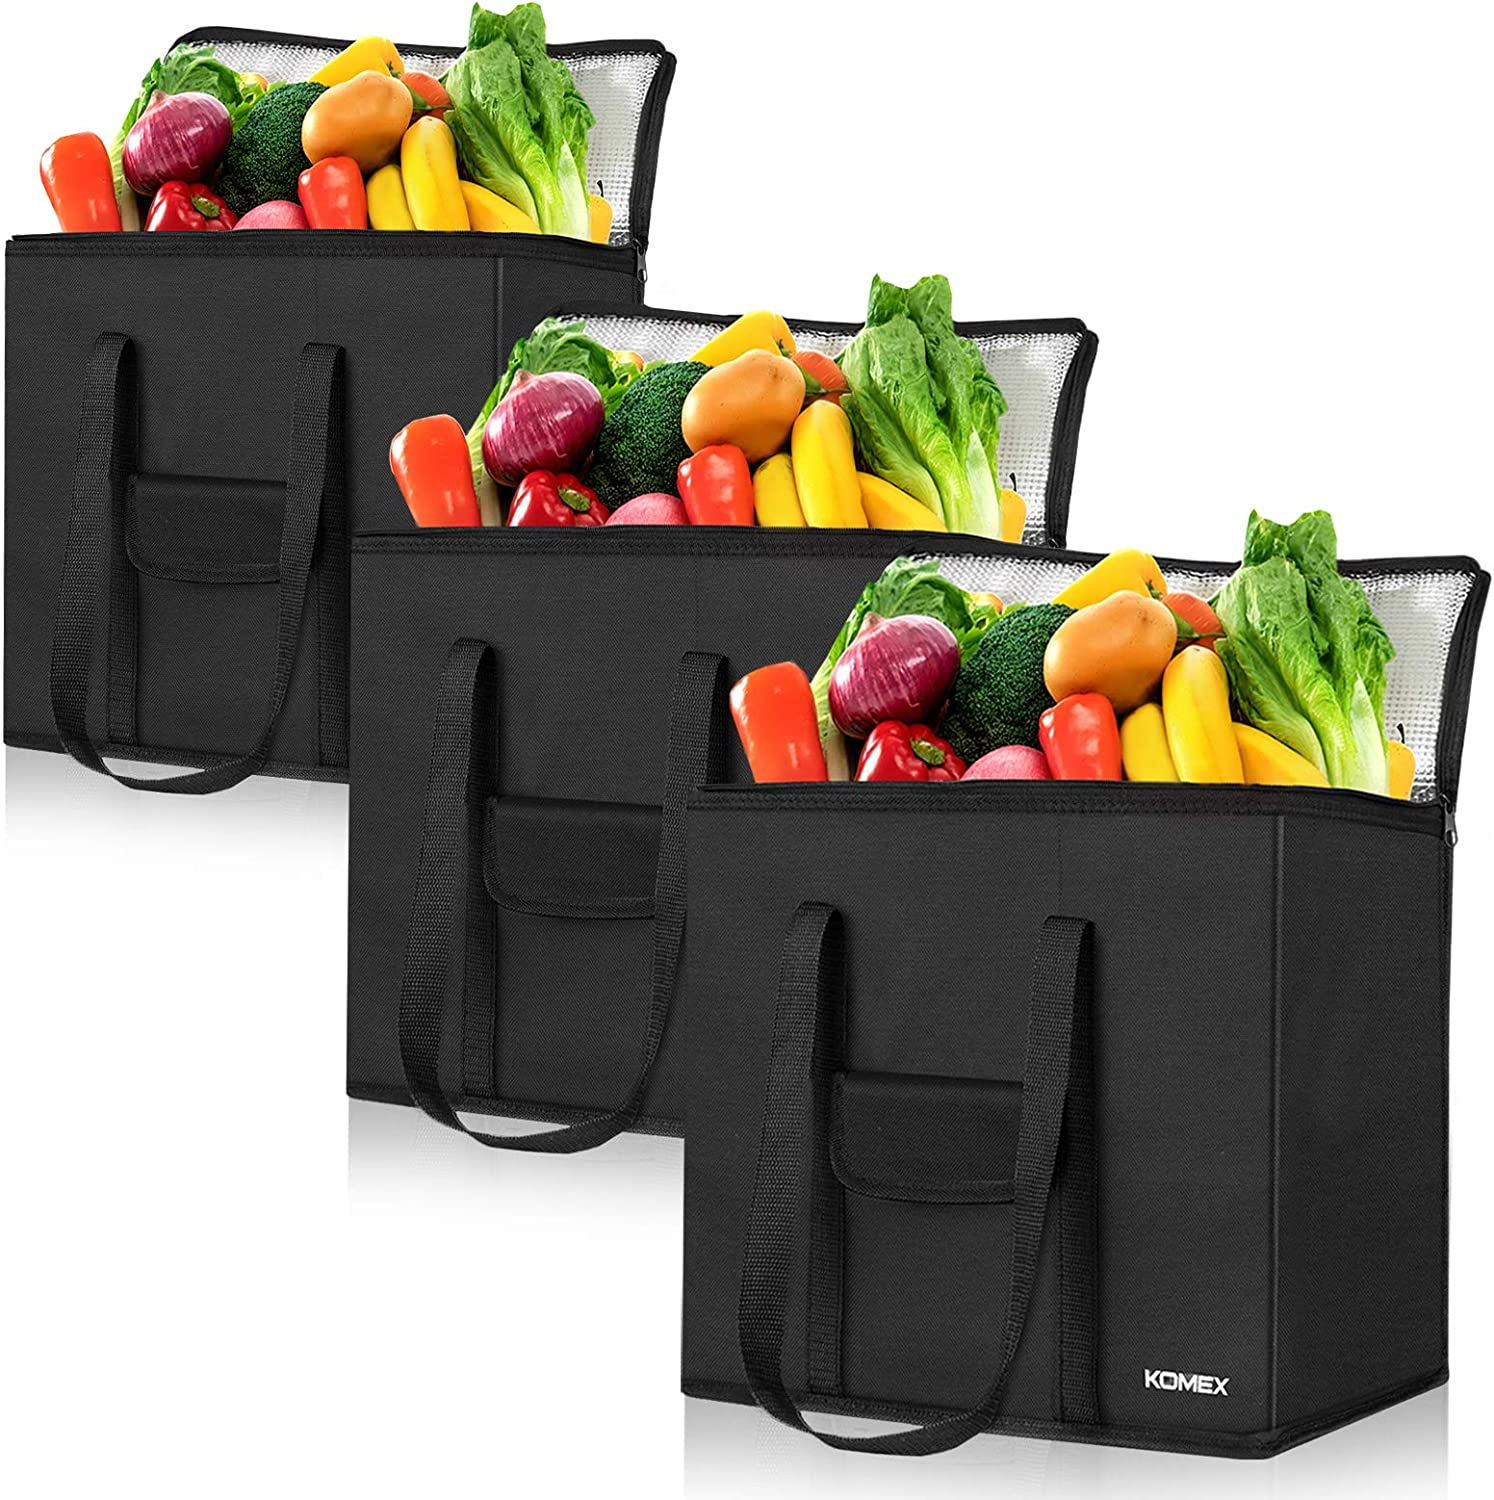 KOMEX Reusable Grocery Bags Foldable 3 Pack Shopping Bags With Sturdy Zippered